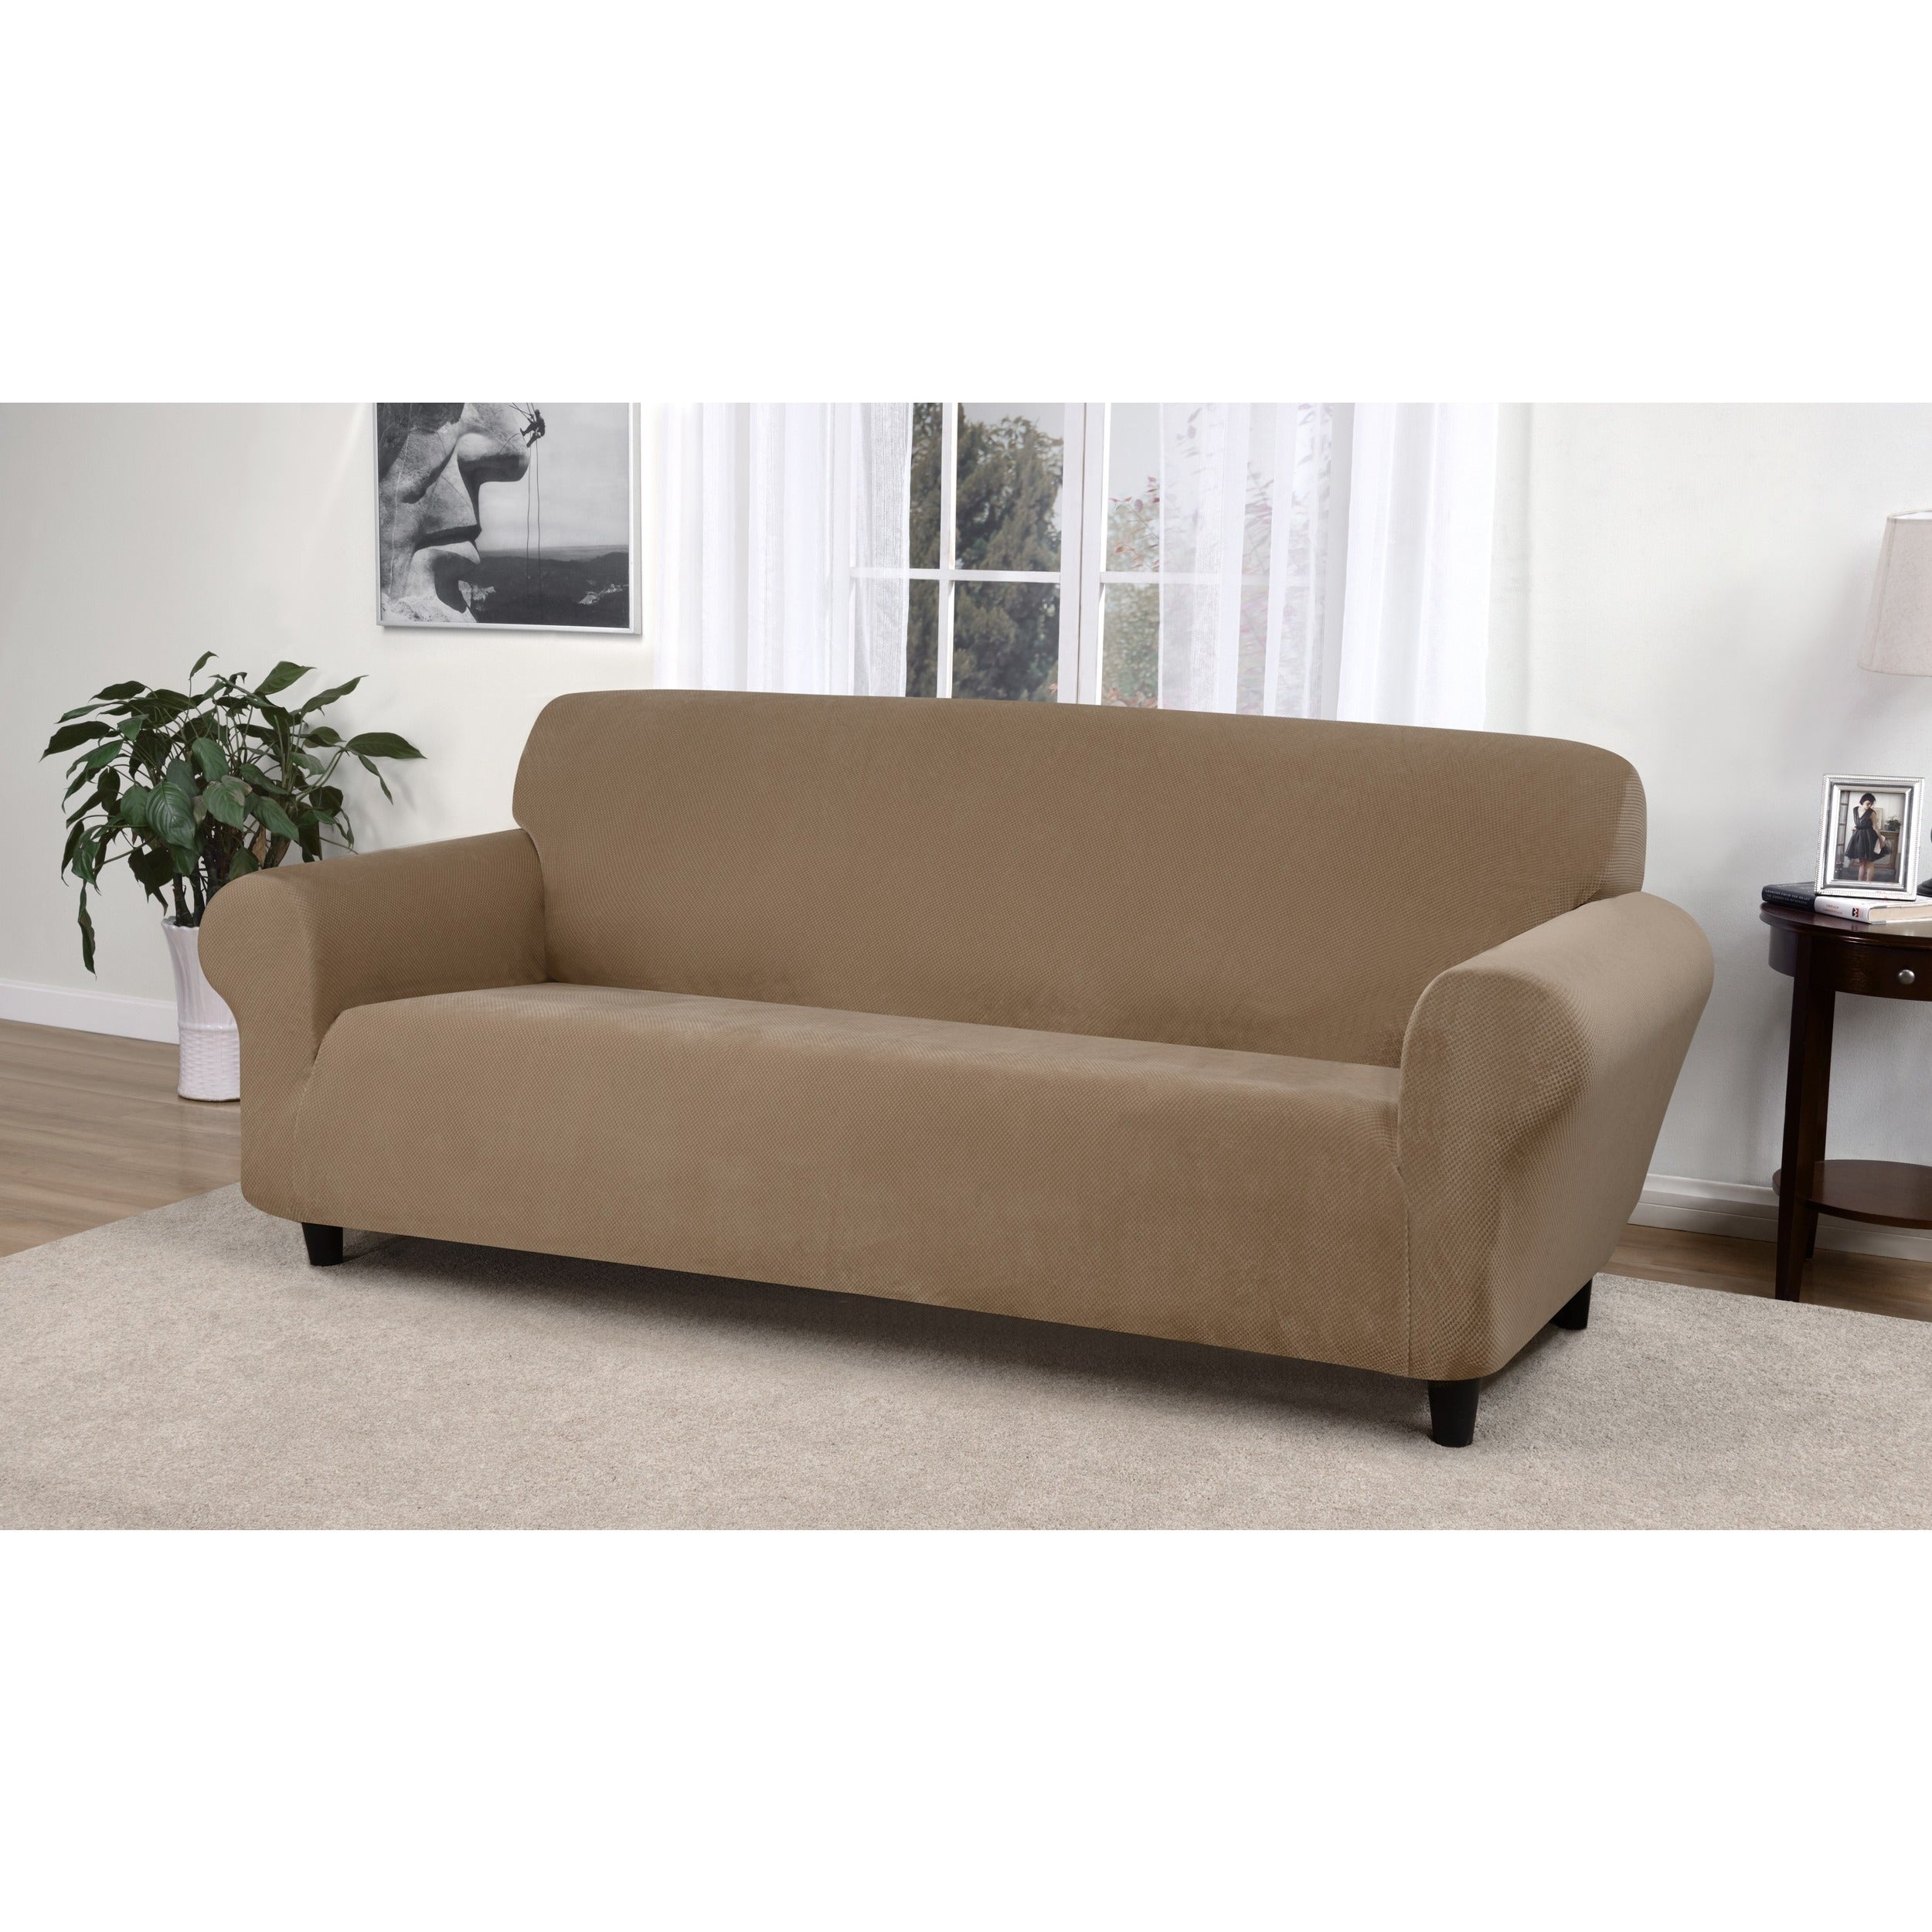 Beau Shop Kathy Ireland Day Break Sofa Slipcover   Free Shipping Today    Overstock.com   14046727